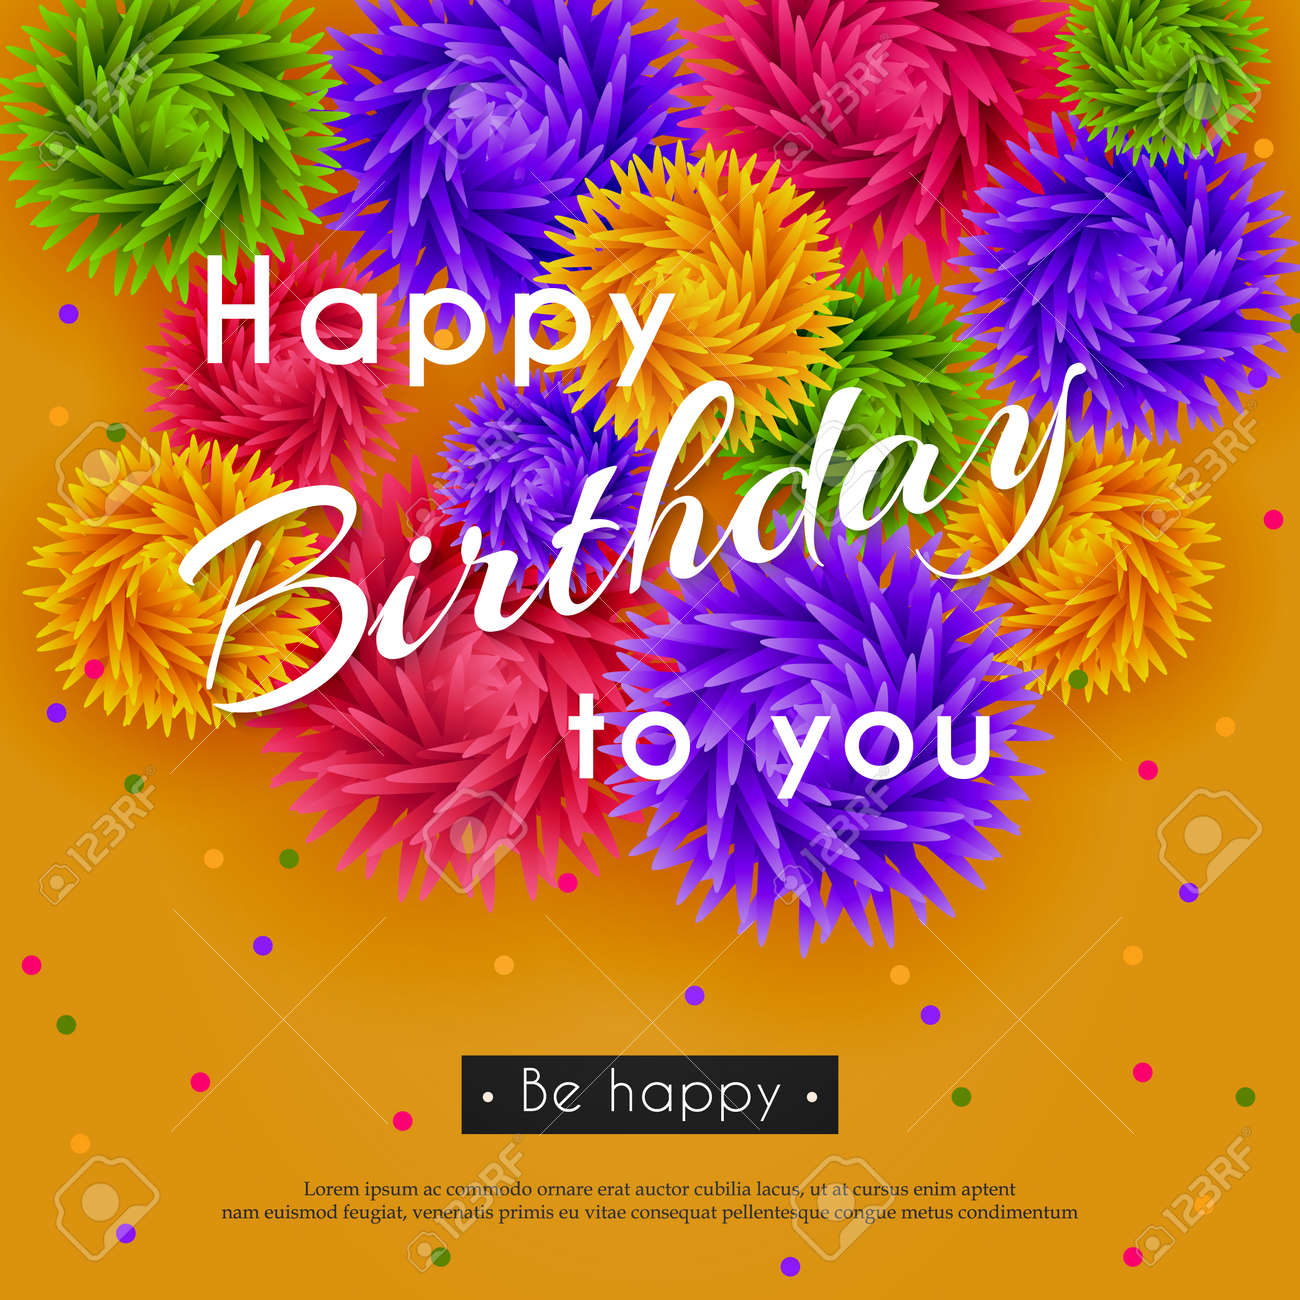 happy birthday to you. background with 3d flowers and text. paper